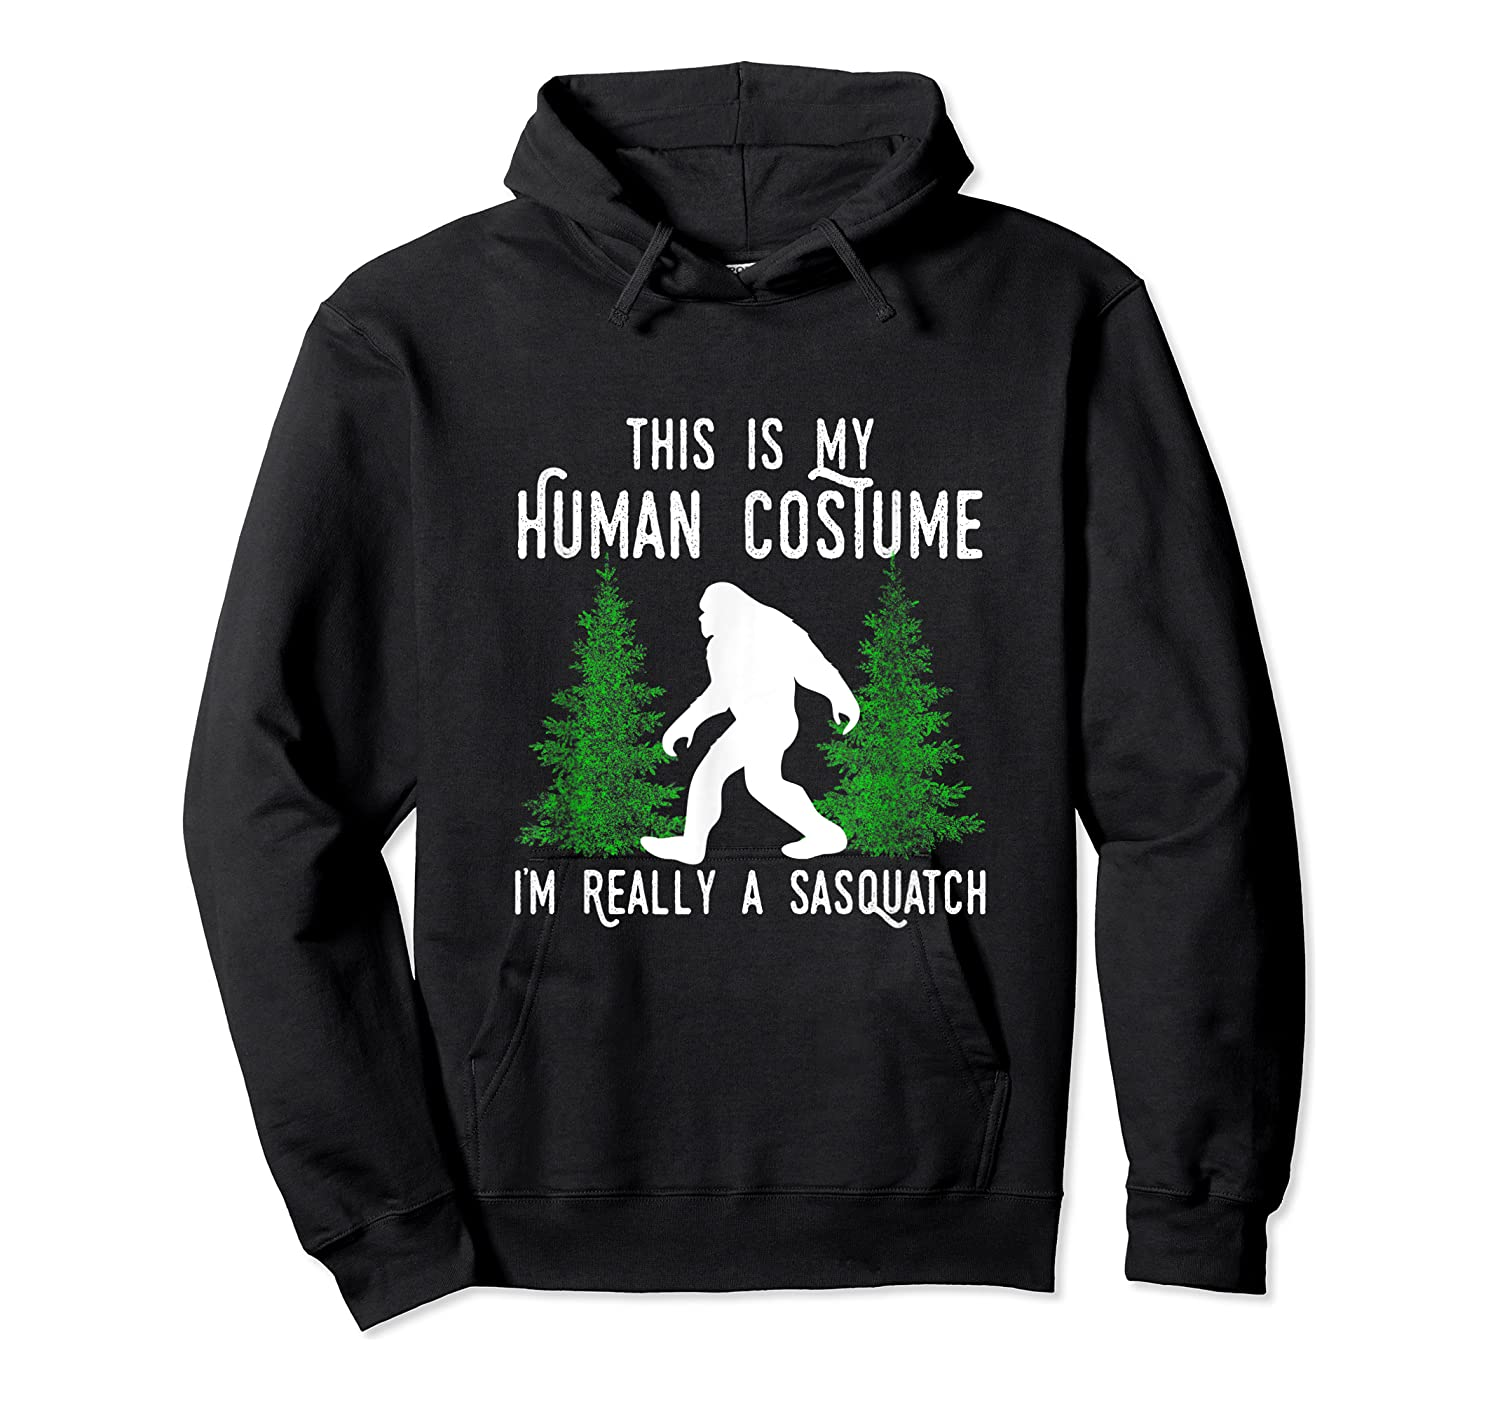 This Is My Human Costume I'm Really A Sasquatch Shirts Unisex Pullover Hoodie